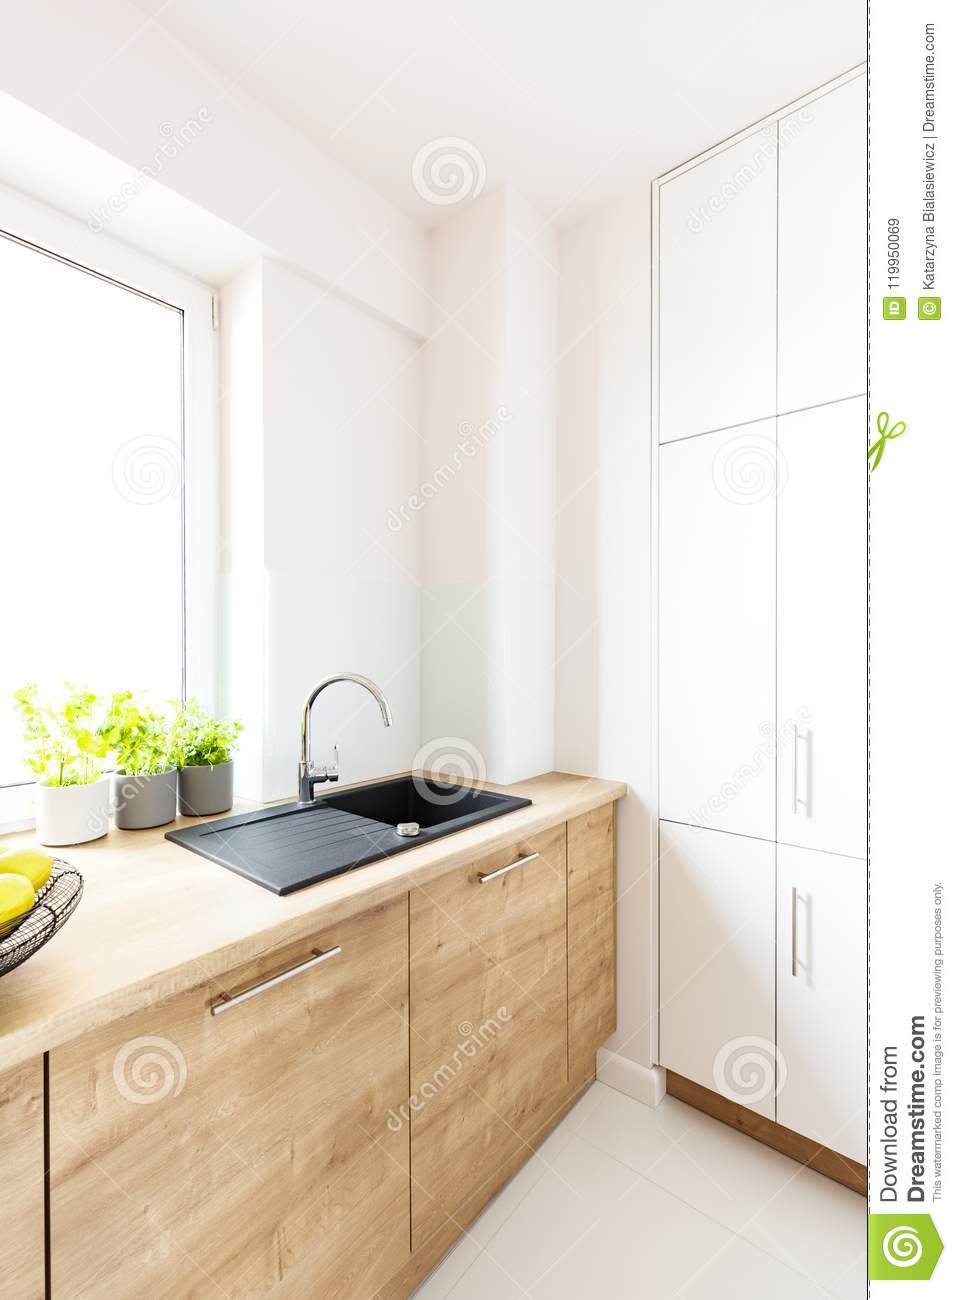 Black Sink In Wooden Countertop In White Kitchen Interior With W Stock Image Image Of Countertop Design 119950069,Modern Front Door Wreath Ideas